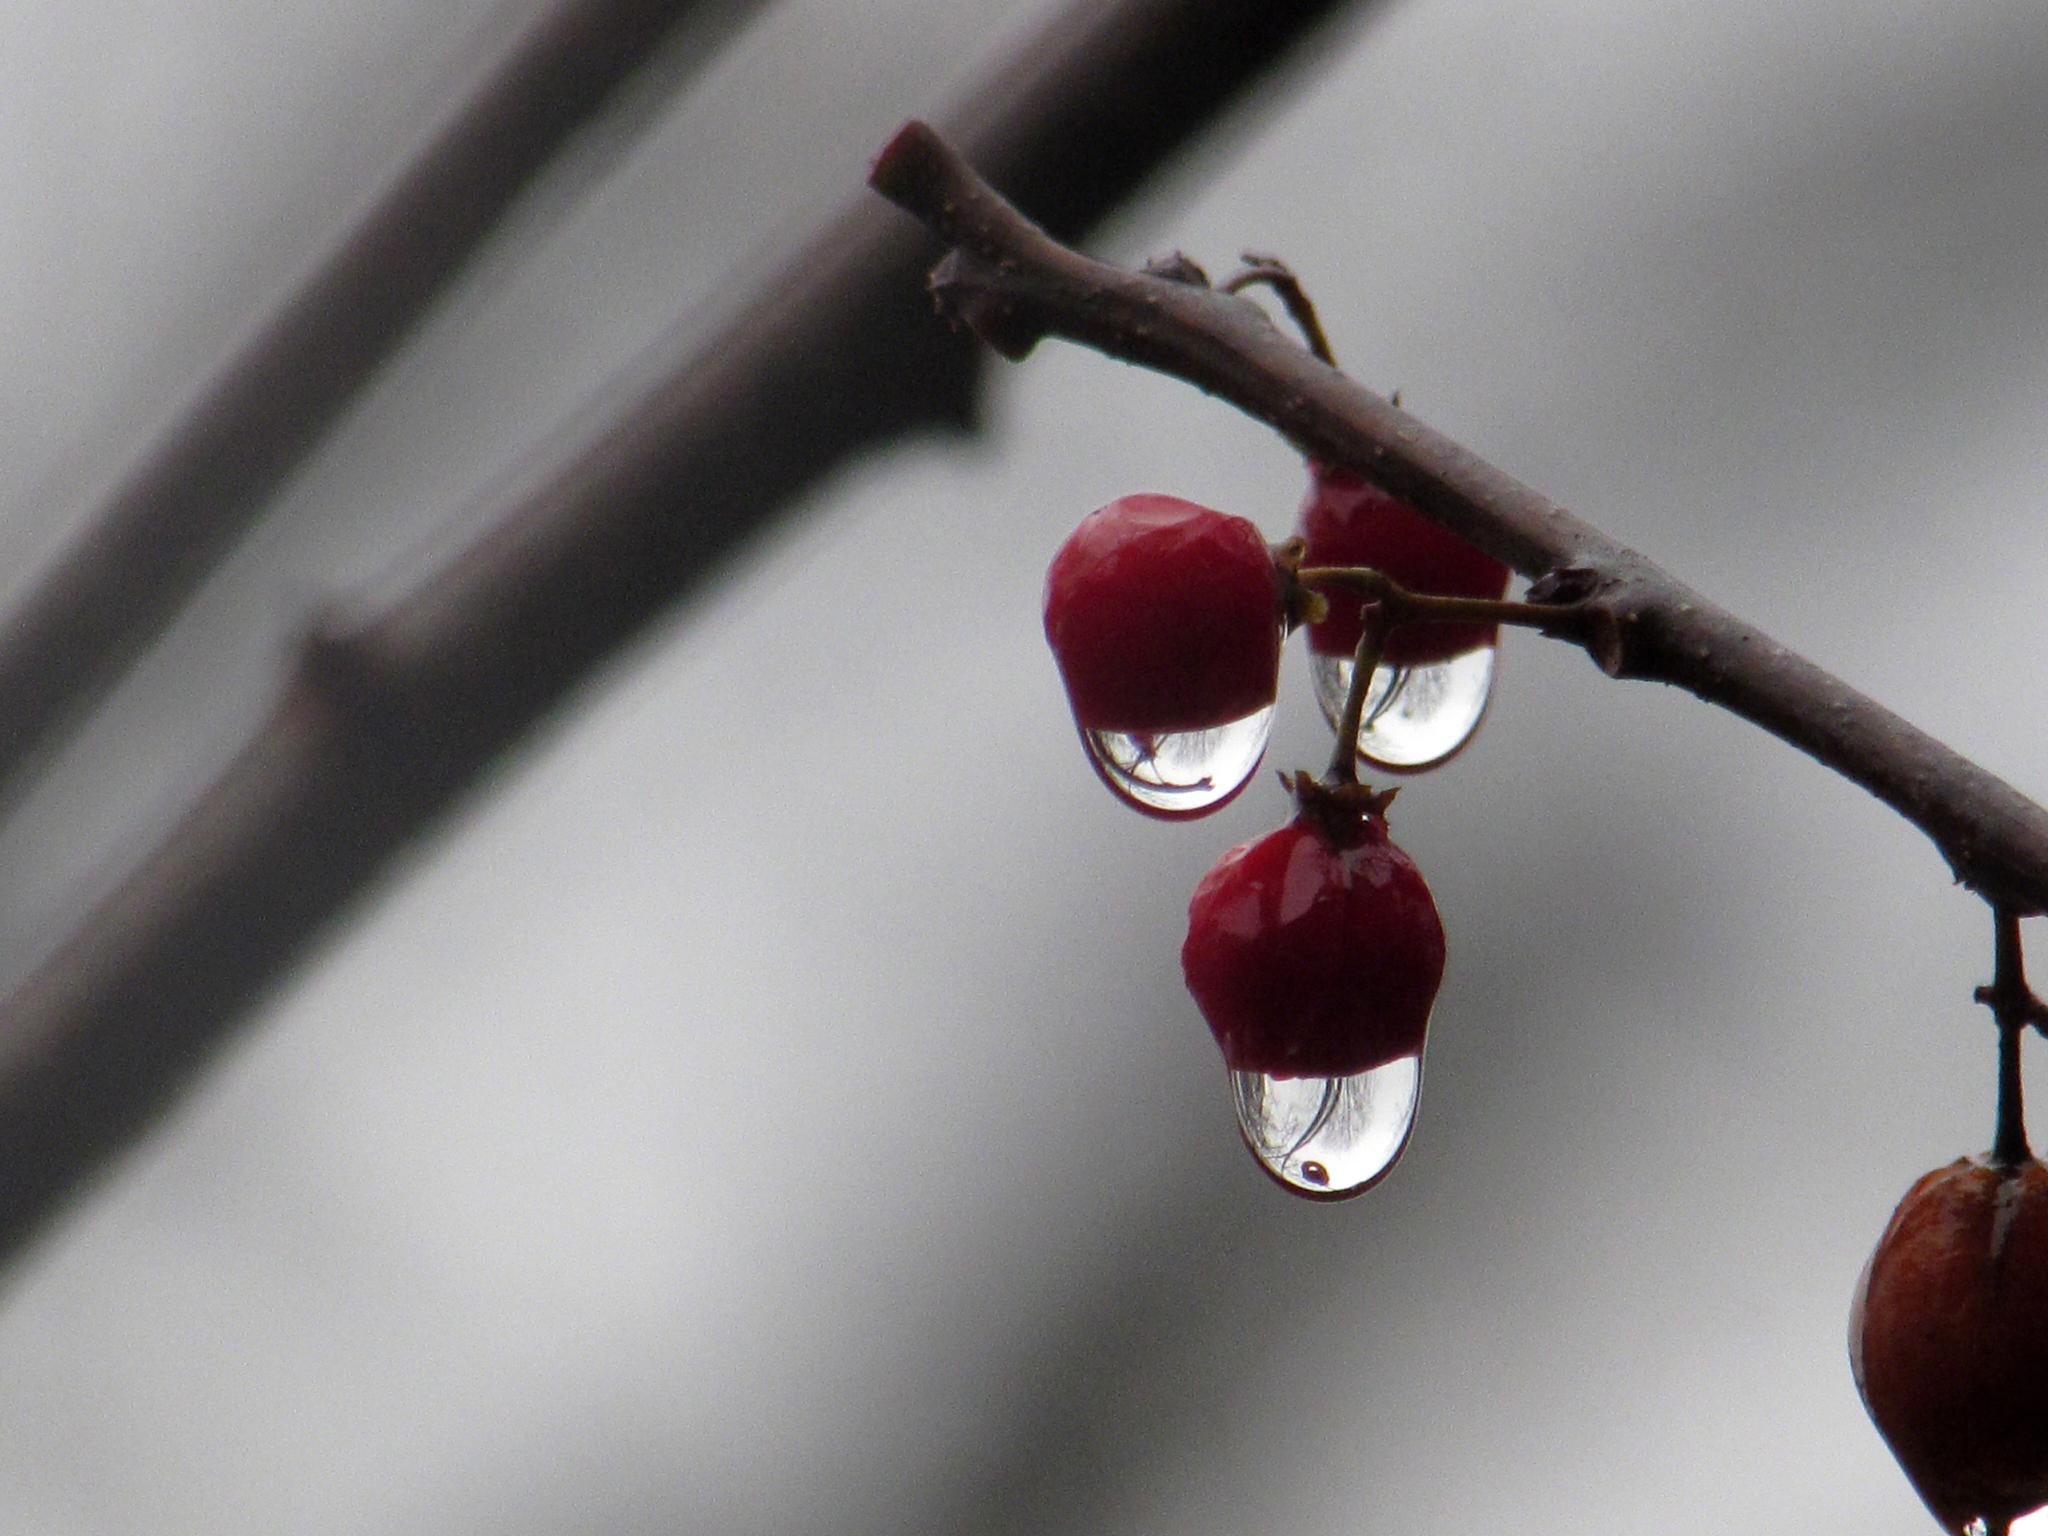 Berries In The Rain by anne.santostefano